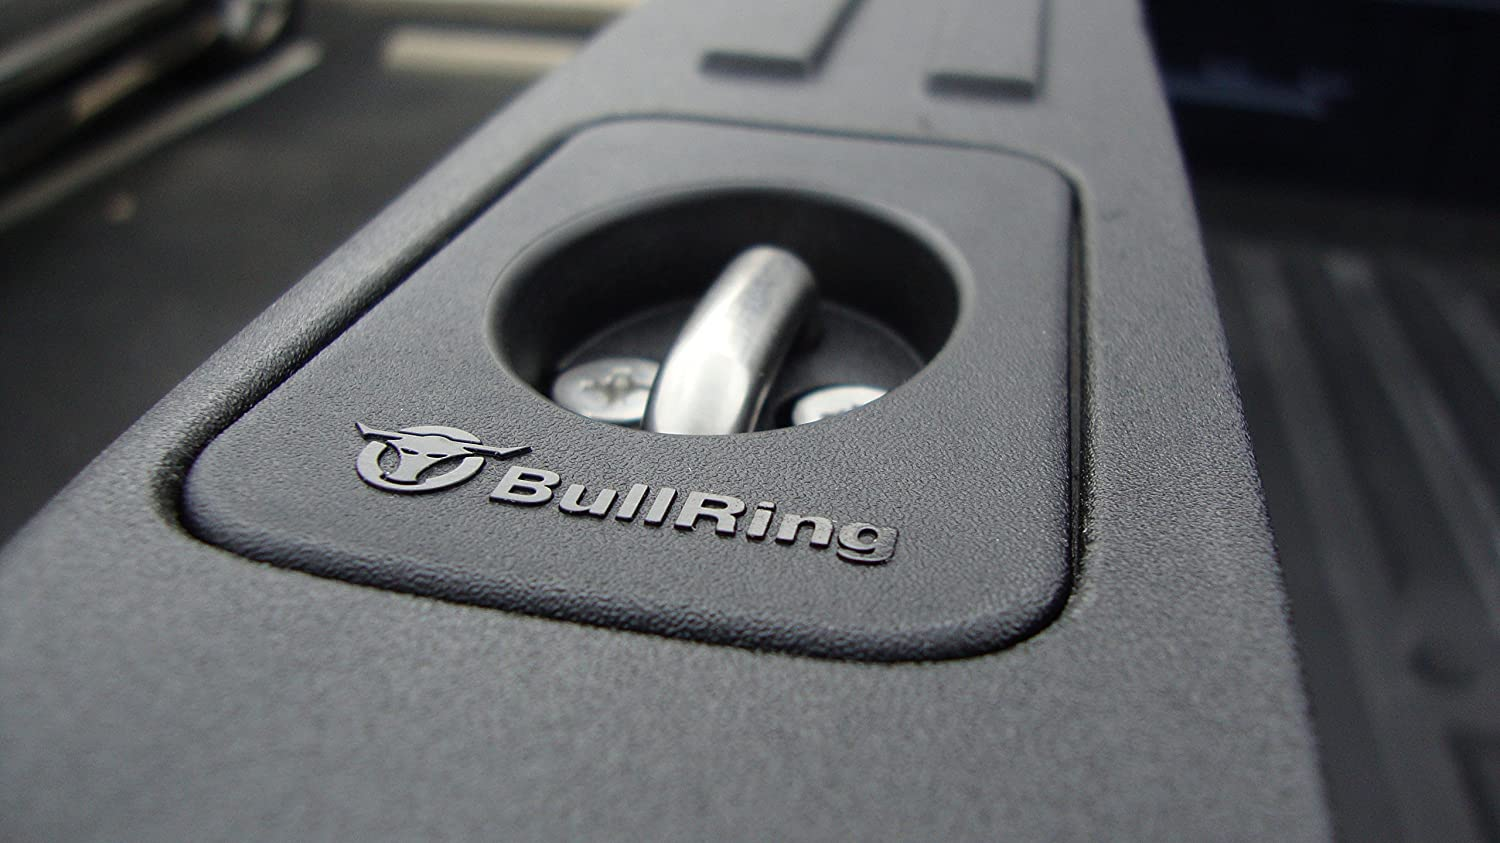 Bull Ring 4035 Special FIT 2017-19Super Duty Trucks with Mis-Aligned Rail Cap 1 Pair Ford Flush Offset for 2015-19 F 150